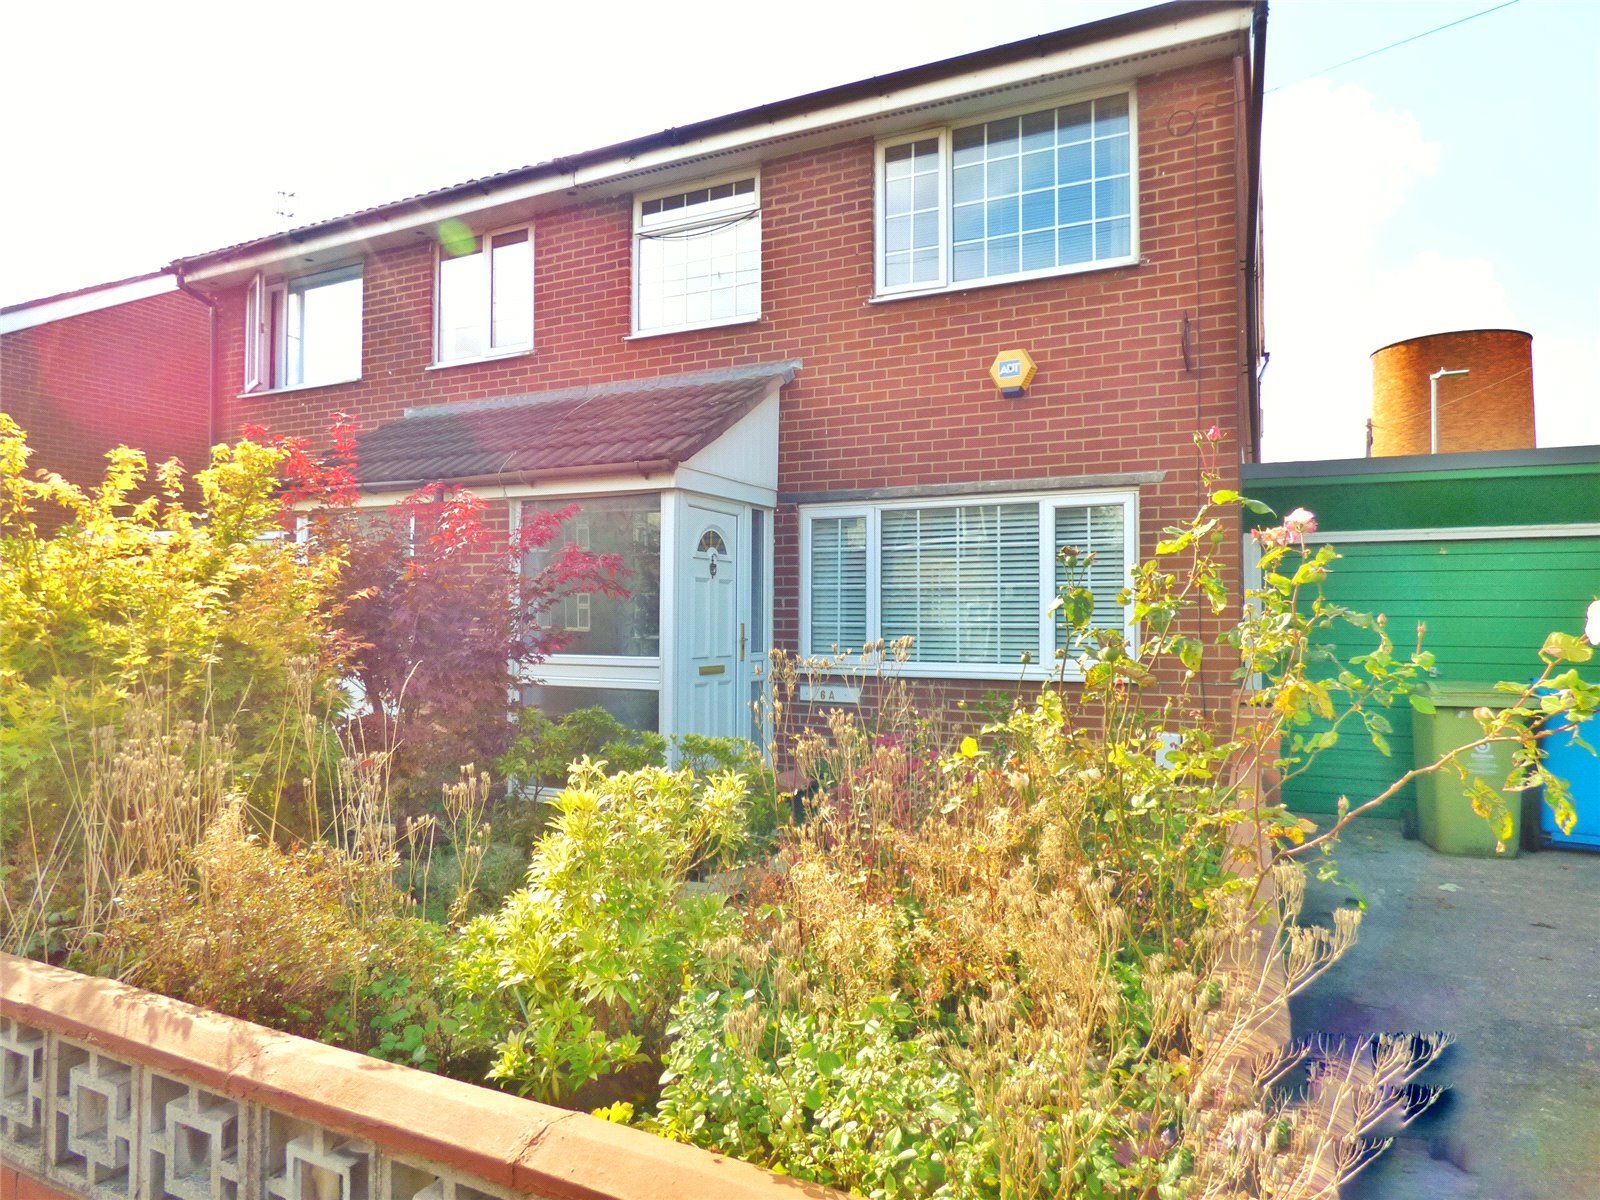 3 Bedrooms Semi Detached House for sale in Grampian Close, Chadderton, Oldham, Greater Manchester, OL9